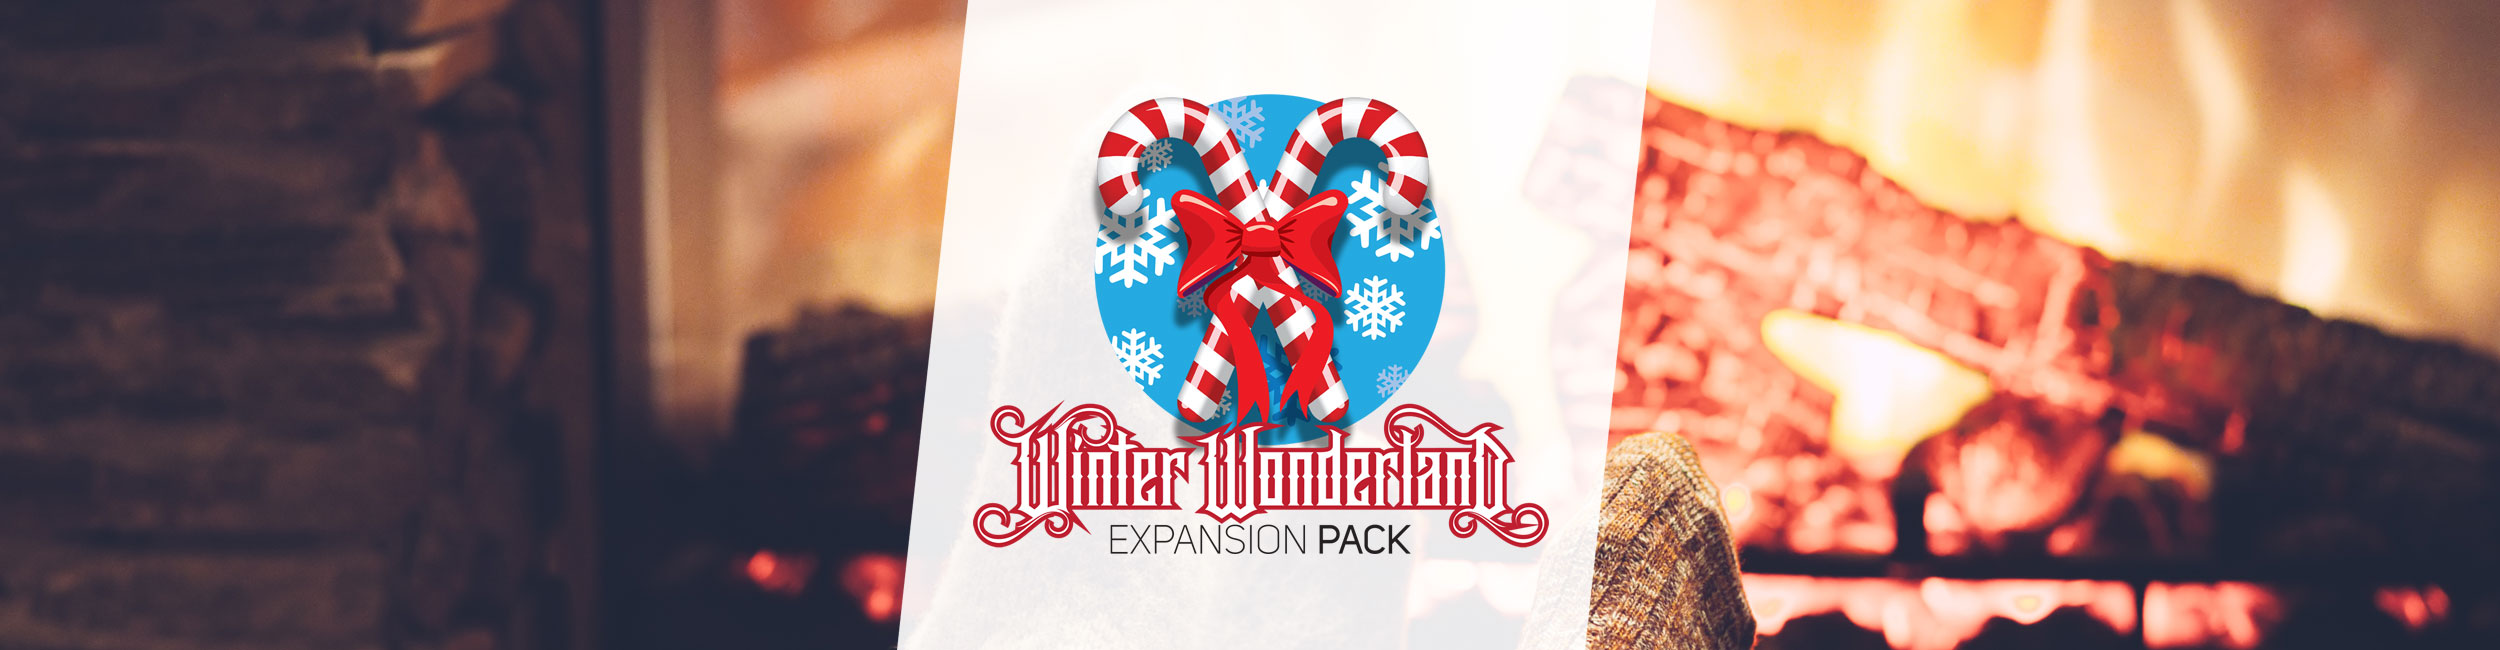 Winder Winderland Logo Expansion Pack banner